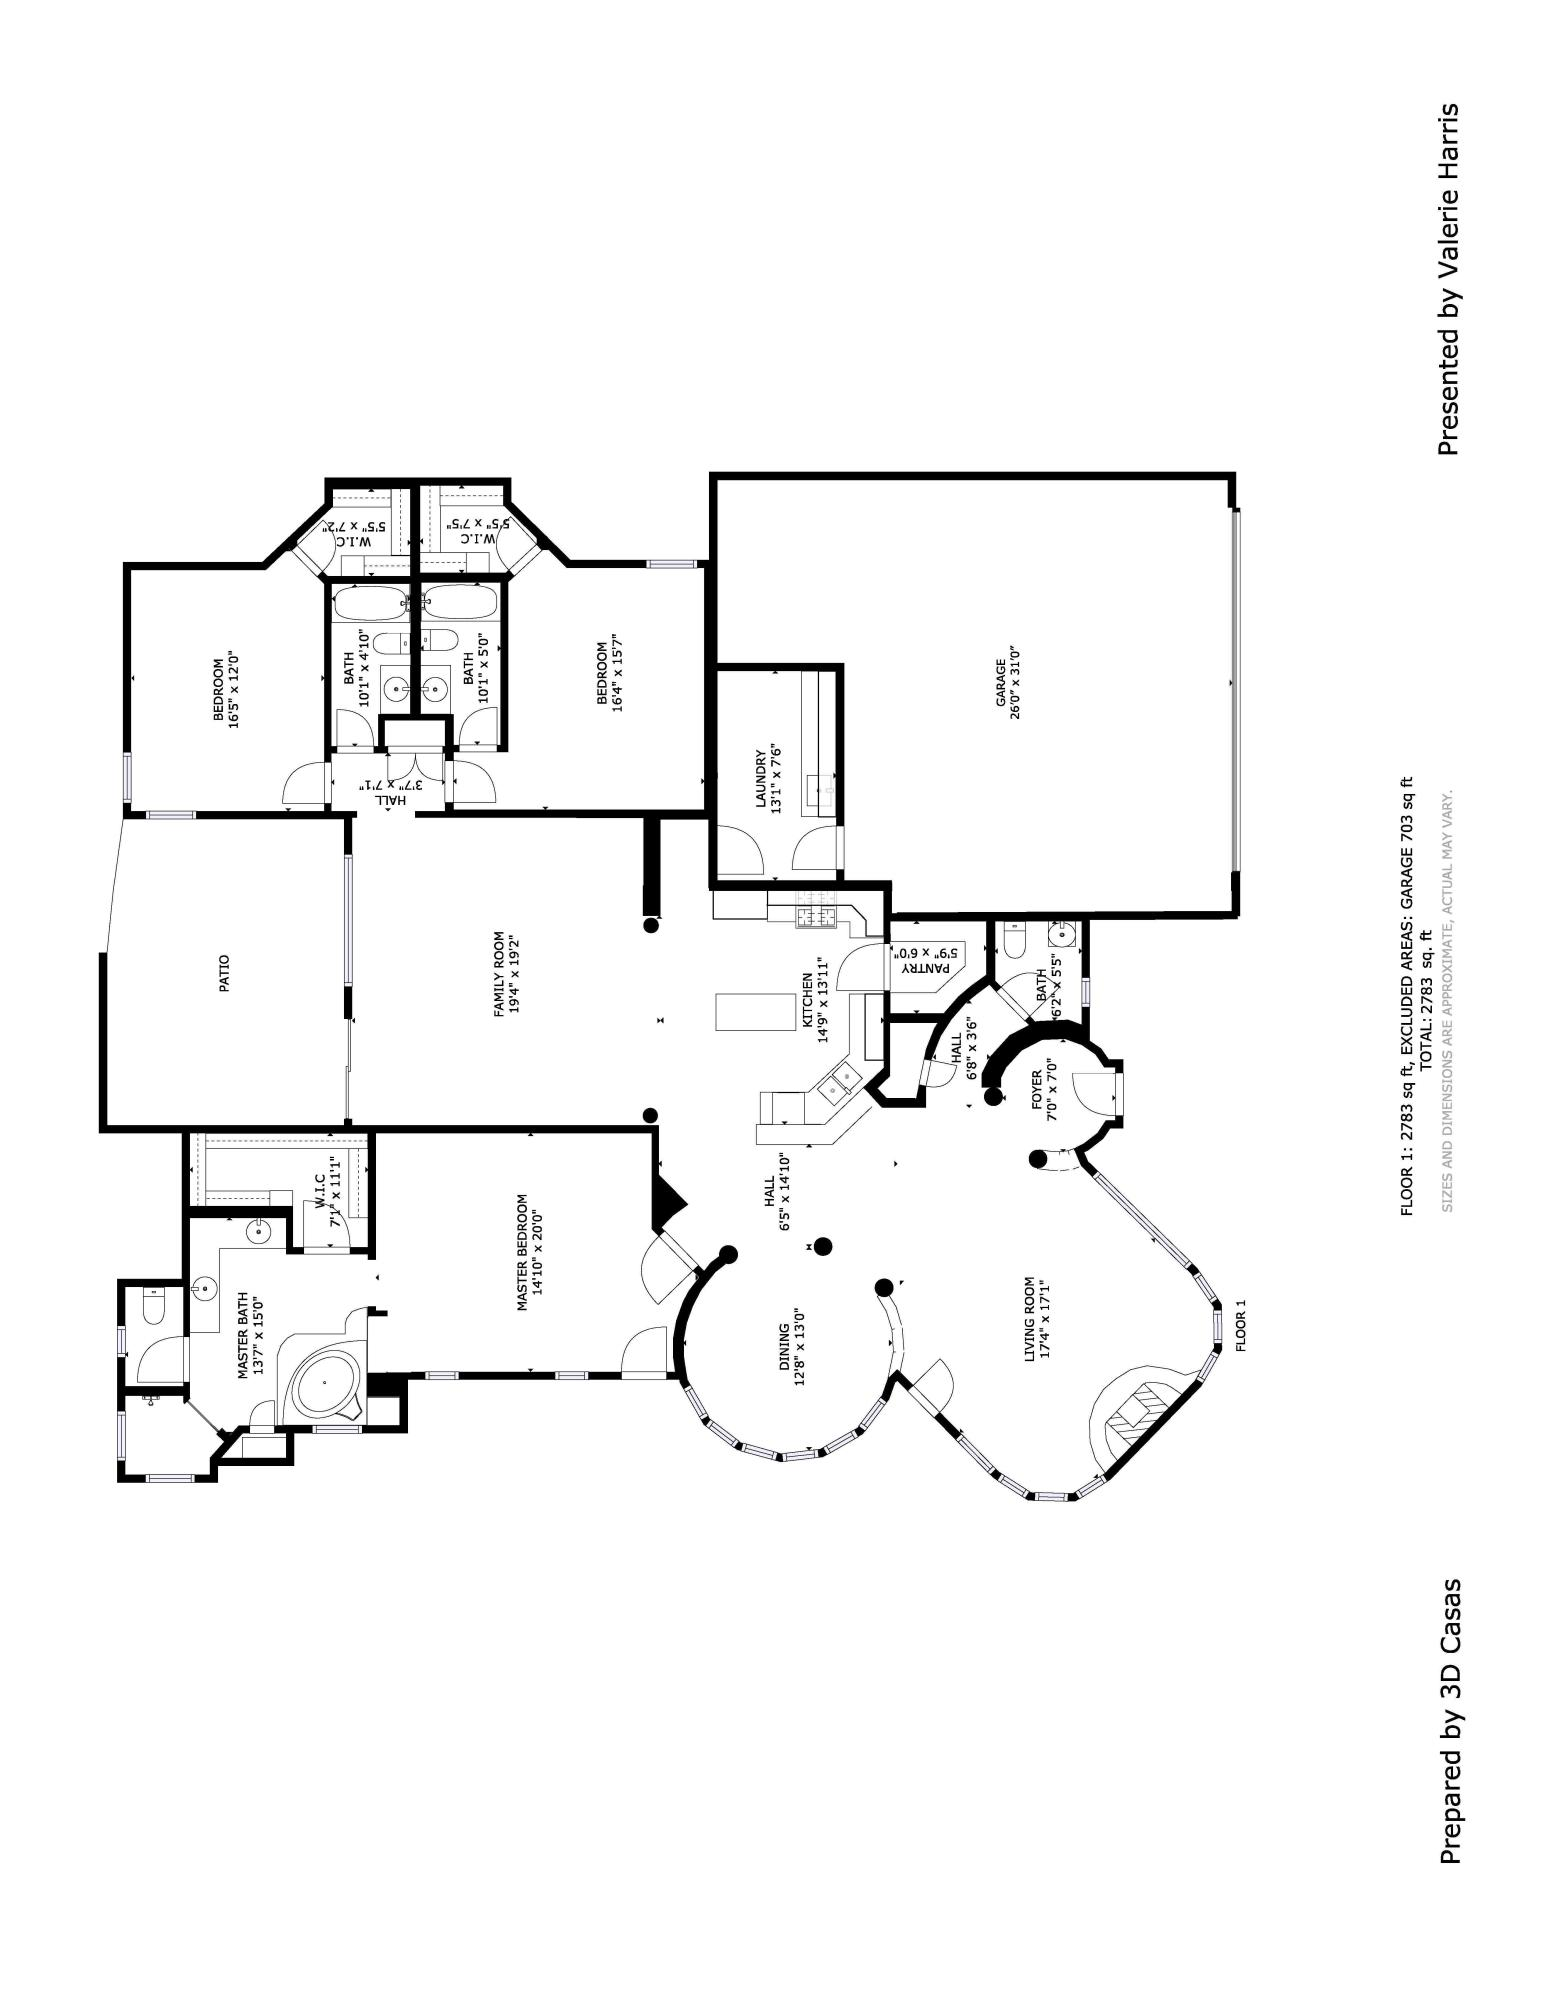 ** Lumber Costs and Contractor costs coming down, Builder says to DROP THE PRICE!!. American Quality Builders is proposing a New Construction with an open floor plan. 2712 Sqft, Featuring 3 bedrooms, 4 Baths, Oversized Finished Garage w/ 220v outlet, Covered Porch in back, Granite Counter Tops, Waterproof Vinyl Plank Flooring throughout, with possible back yard access. Views of the Sandia Mountains, Standard Quality Stove, Refrigerator, Microwave and Dishwasher. Construction can begin with a Construction Loan. American Quality Builders has many building plans and can Build to Suit on this lot or your lot (price & amenities may change). Contact broker for more information.